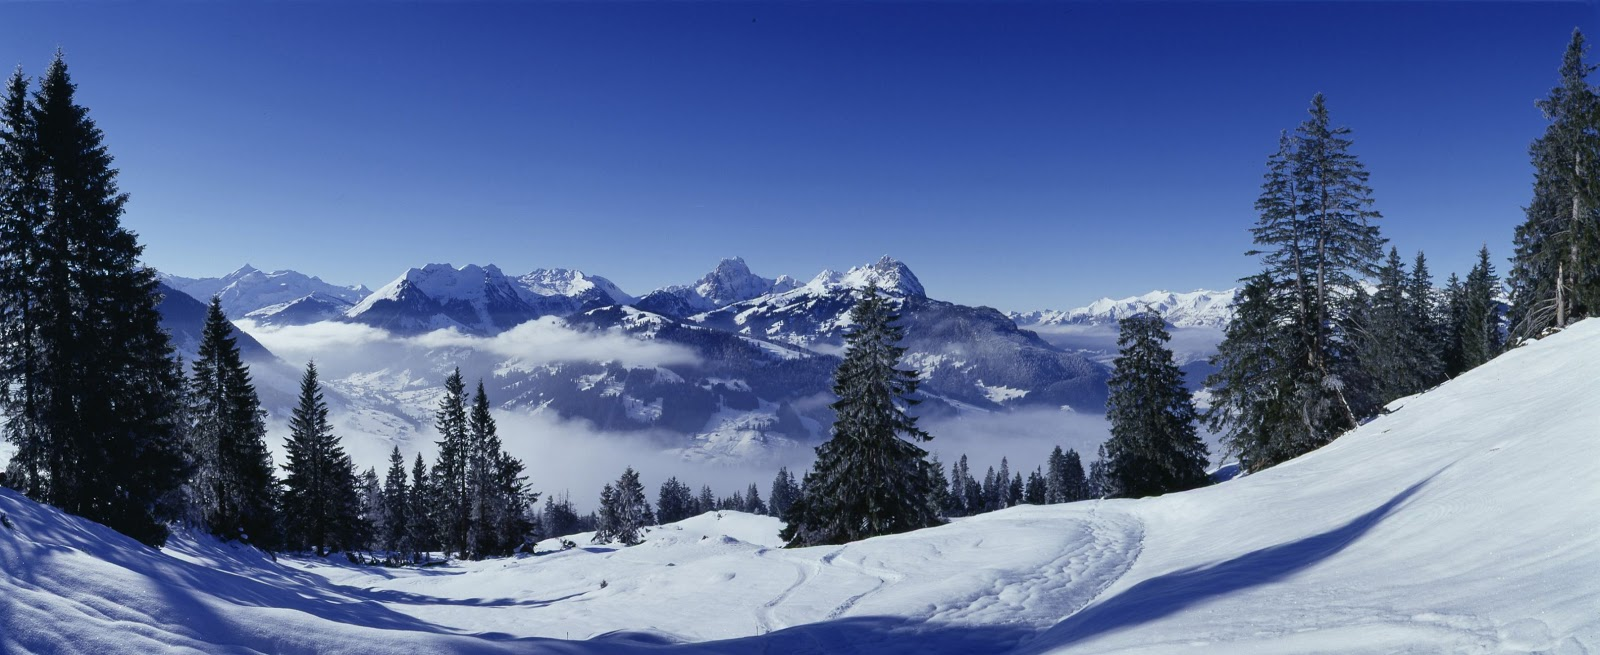 Pristine Alpine slopes beckon to skiers and snowboarders alike. Photo: Gstaad Saanenland Tourismus.